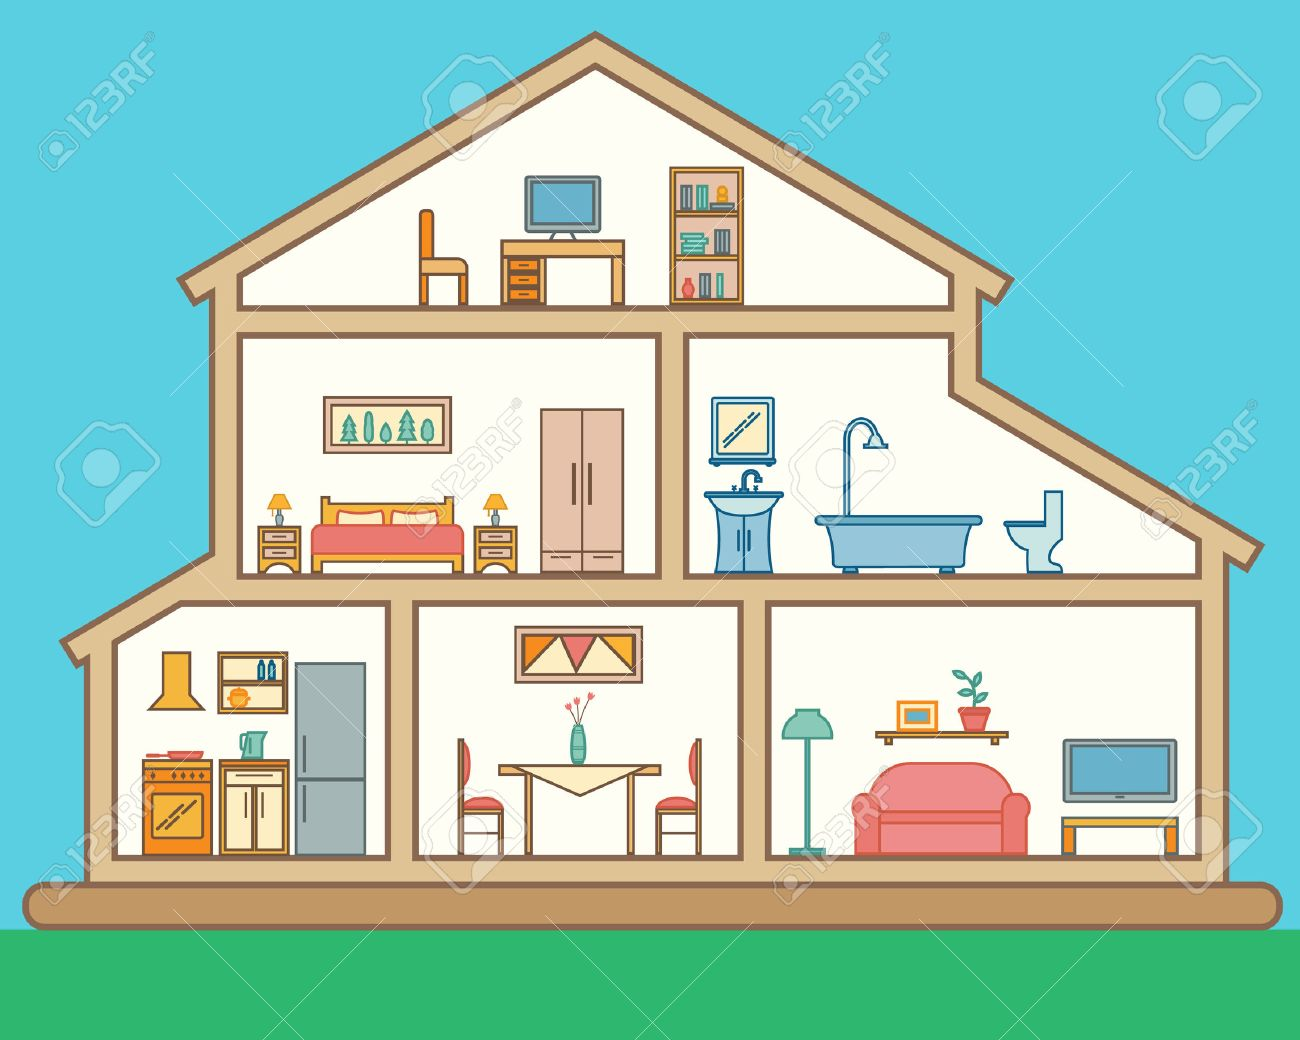 House In Cut. Detailed Modern House Interior. Rooms With Furniture. Flat  Line Style